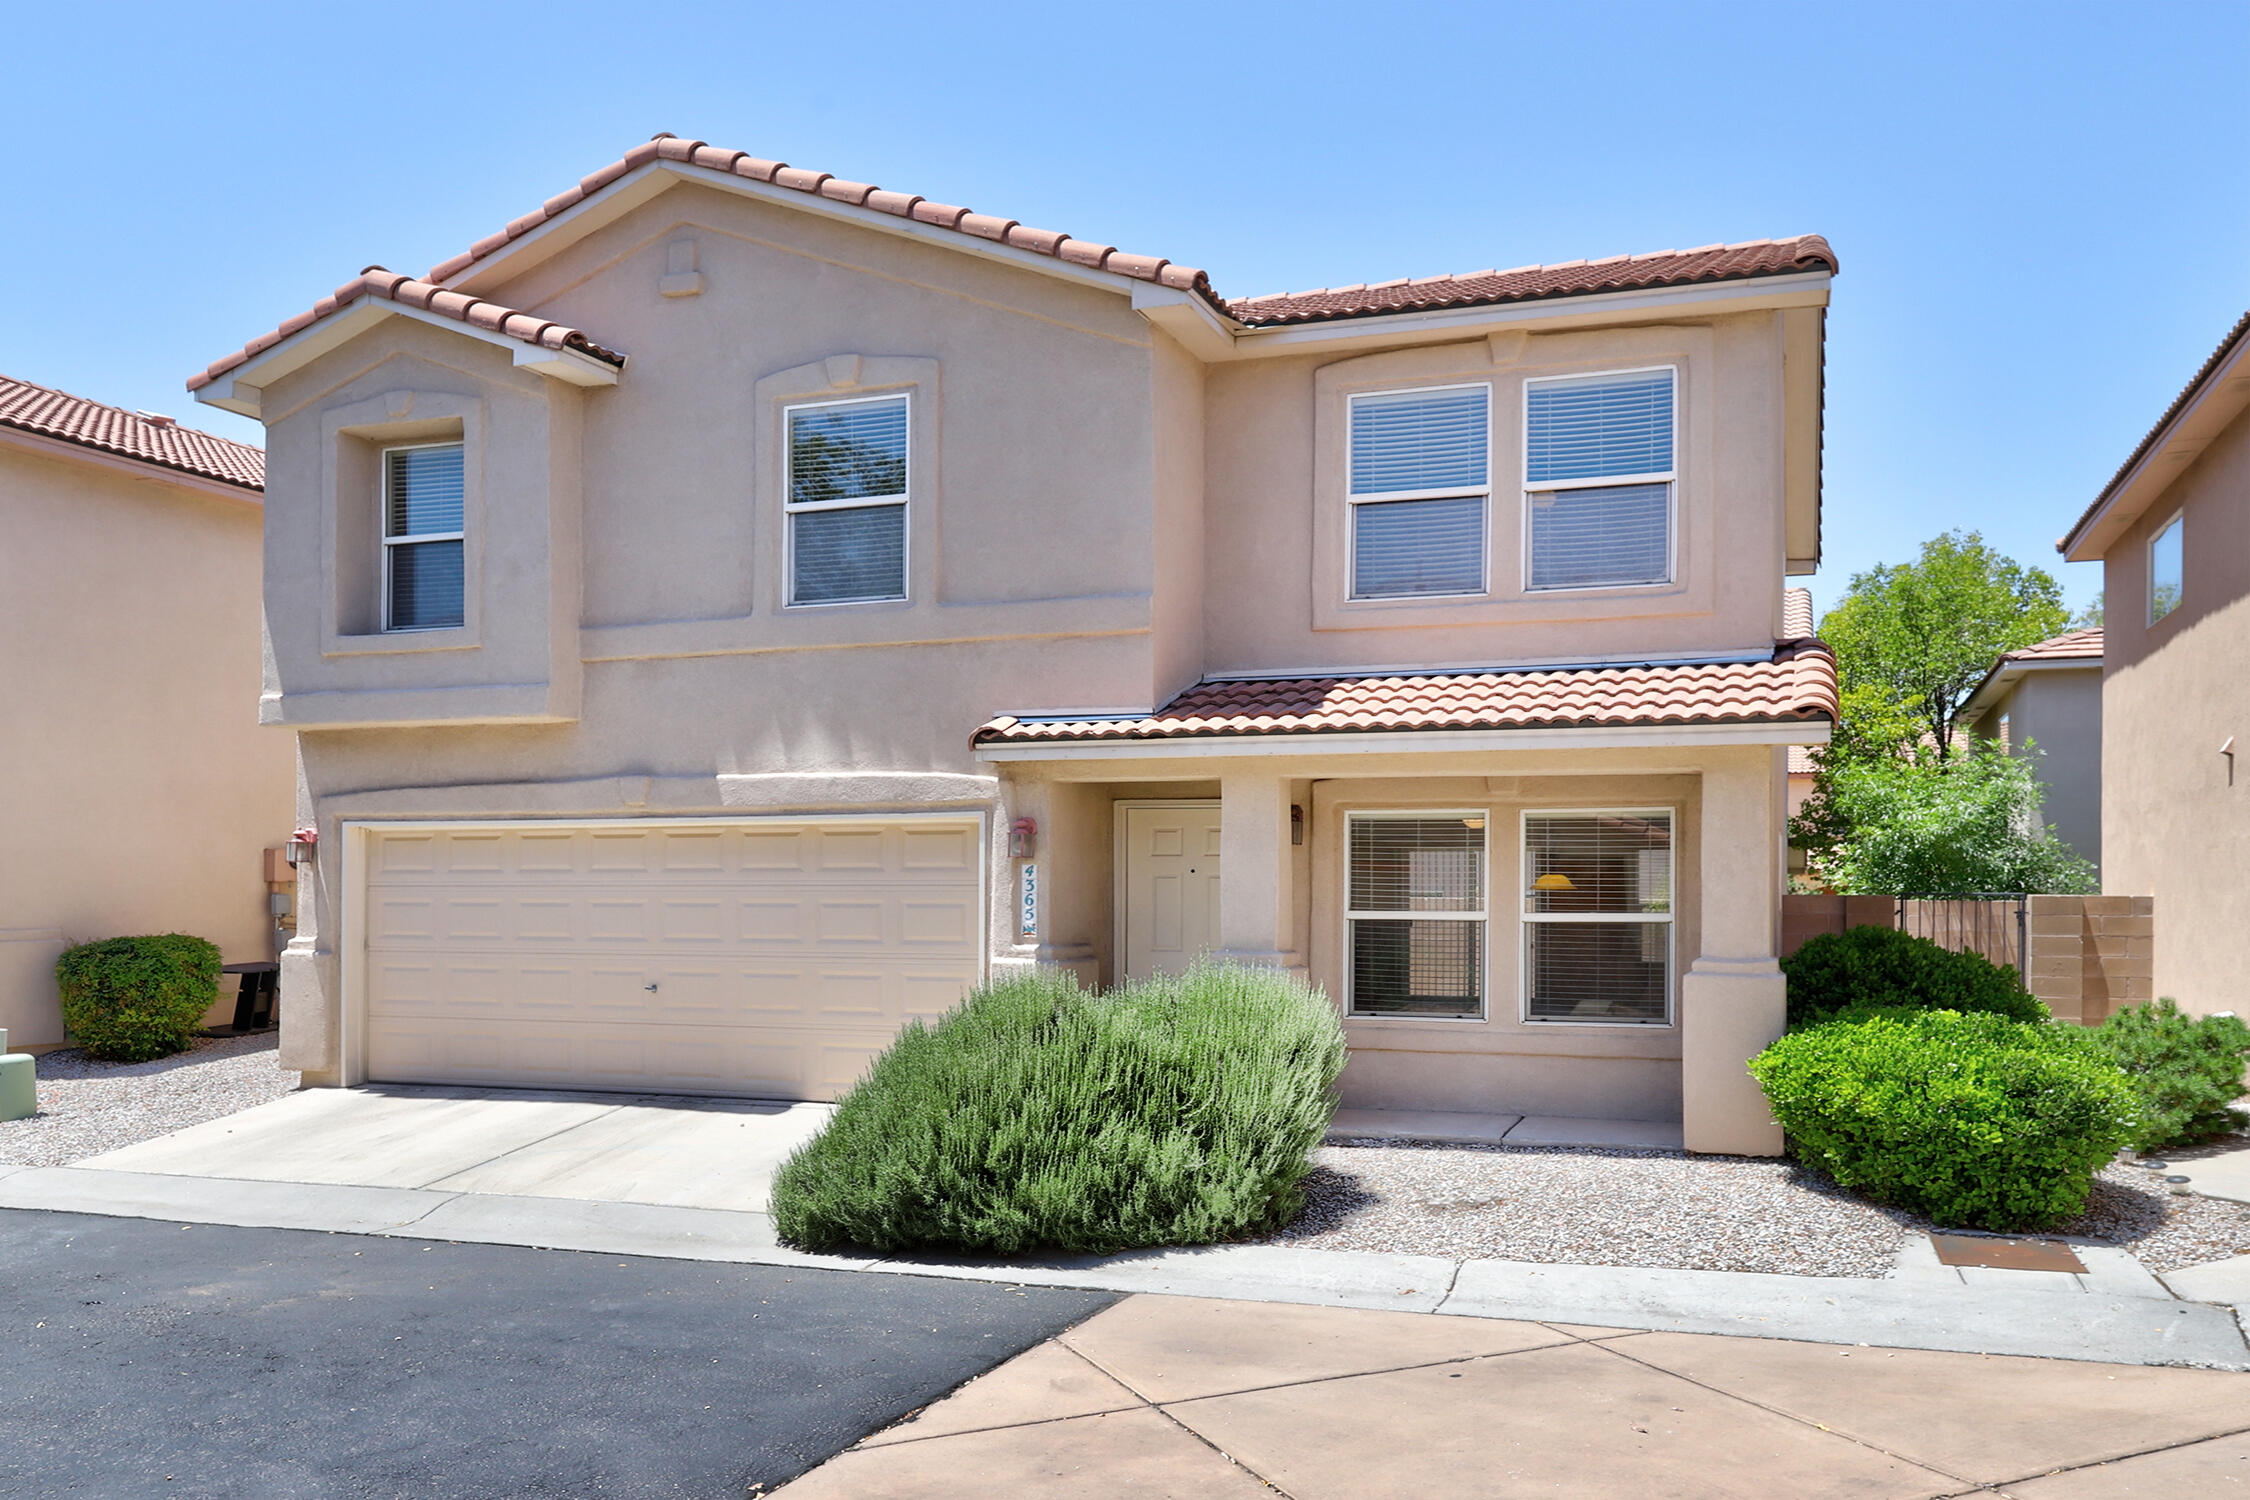 Great location in the desirable gated community of Altura Village. Close proximity to UNM, Nob Hill, Whole Foods, shopping, restaurants and easy freeway access. New hot water heater installed in December 2019.  The stucco was done by Dreamstyle , a nationally known but local firm in 2016 at a cost of $23K.  The stucco job included a solid ''brown coat'' base for the color coat.  The seller says there are no discernable cracks because of this process.  Two car garage, refrigerated air and the washer/dryer are included! Hard surface flooring on stairs and in hallway. Maintenance free (magnet driven) water softener.  The front yard is maintained by the HOA with a low maintenance backyard. Private park within the community. Come see this Altura Village gem today!